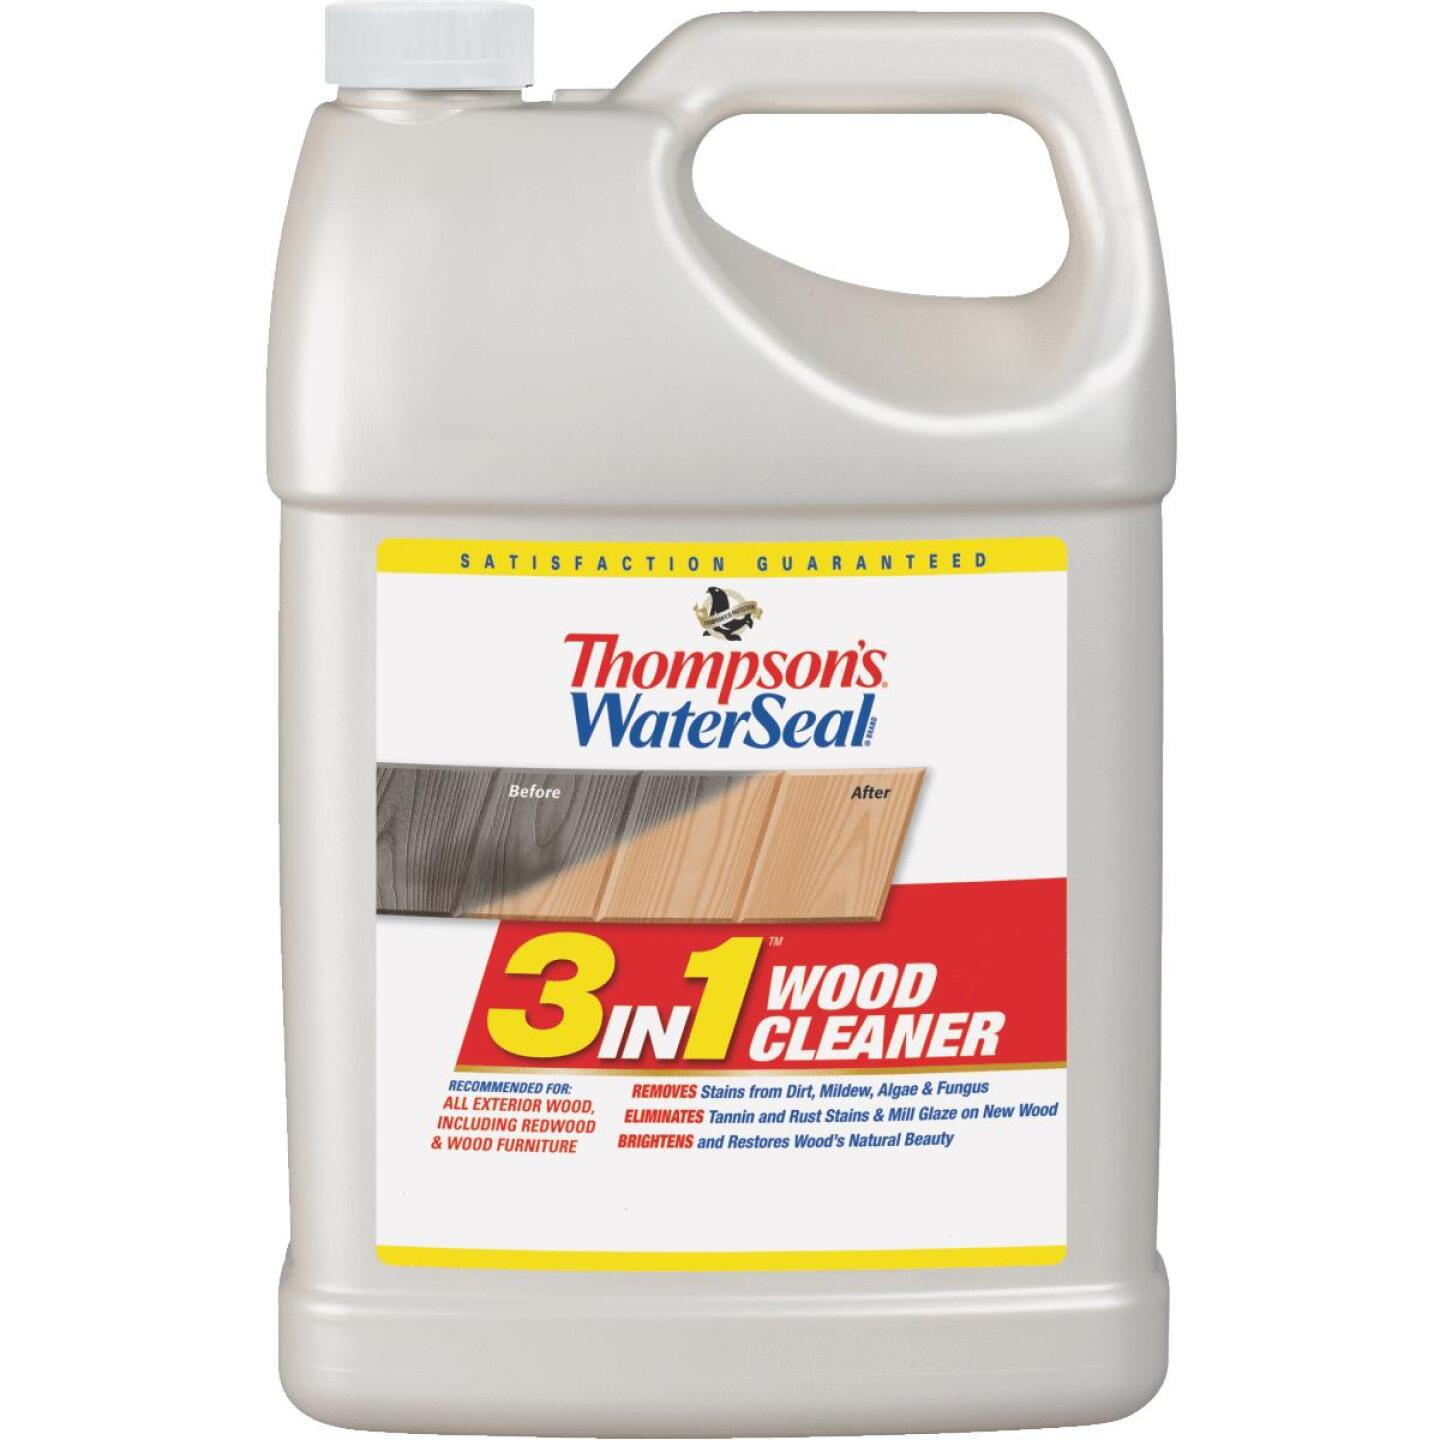 Thompson's WaterSeal 1 Gal. 3-In-1 Wood Deck Cleaner Image 1